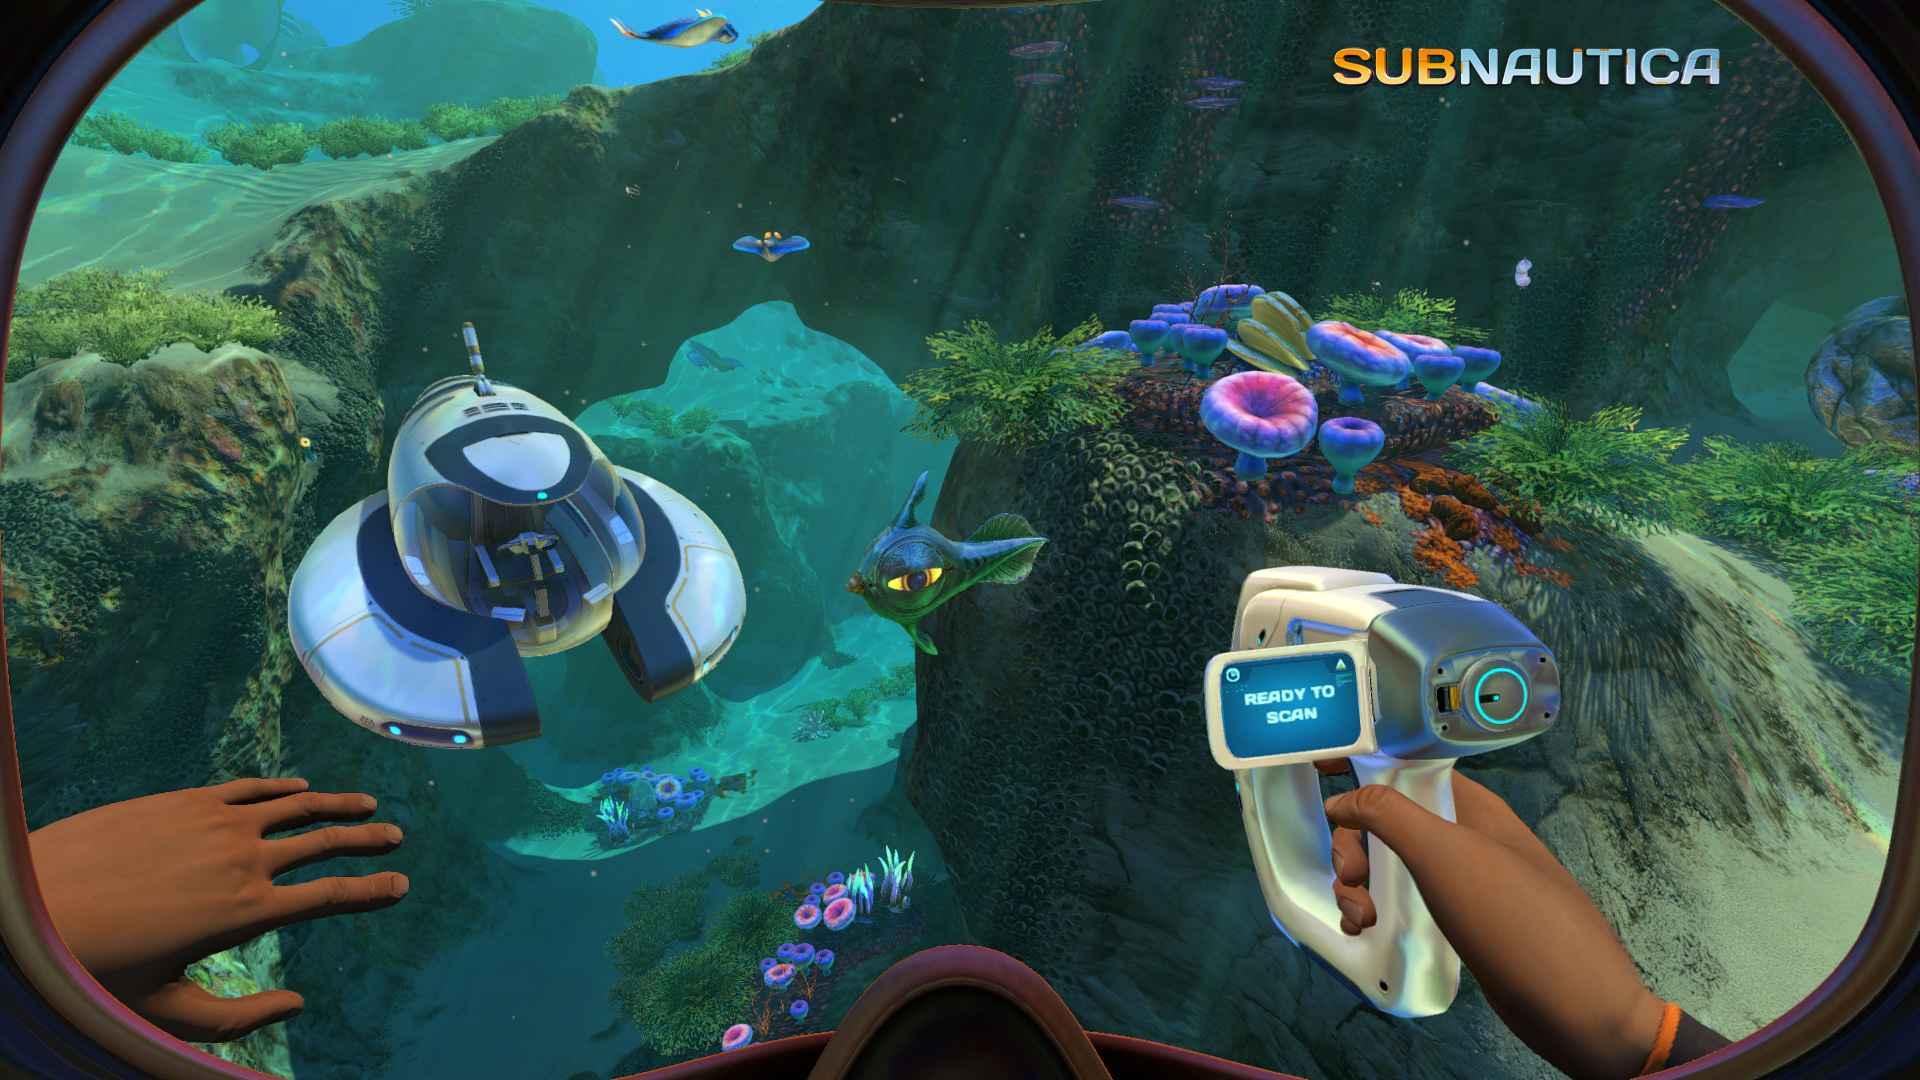 Subnautica PS4 Release Date Is 2018 But Won't Feature PSVR Support